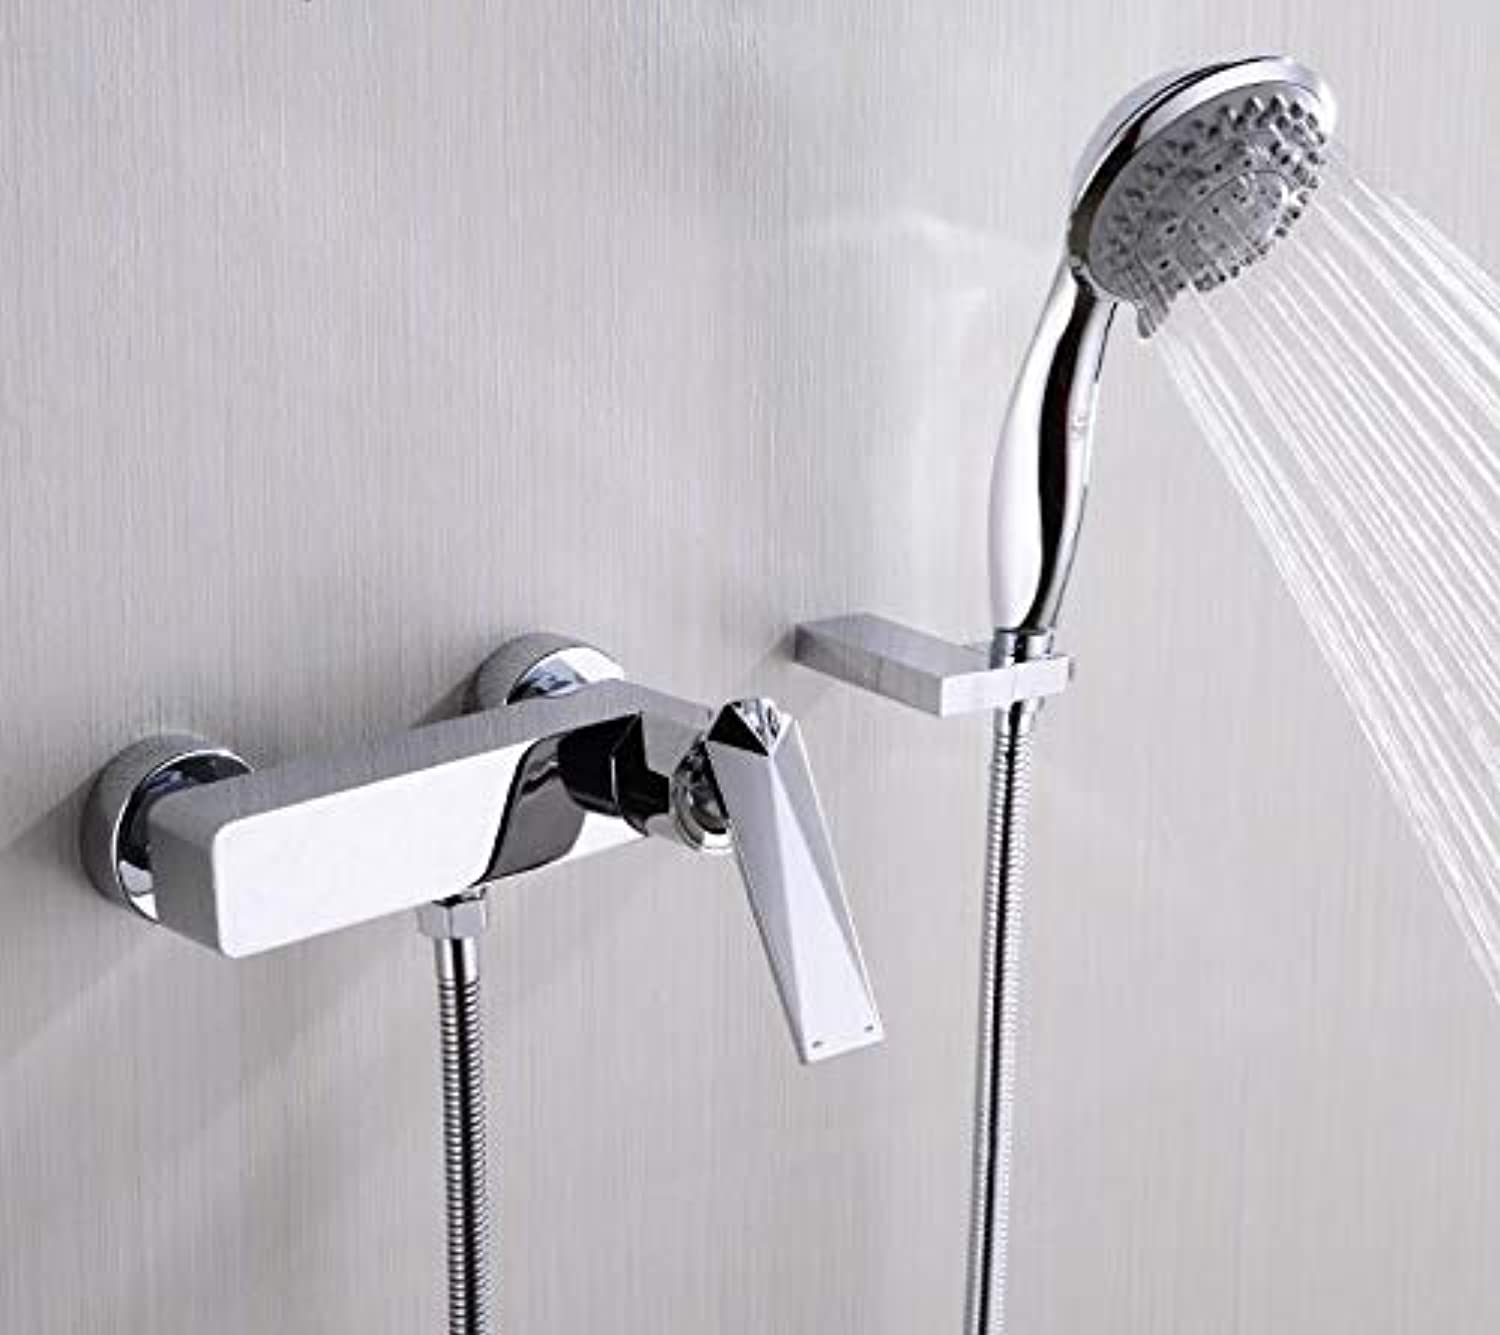 Decorry All Copper Hot and Cold Diamond Surface Mounted Bathtub Faucet Shower Mixing Valve Faucet